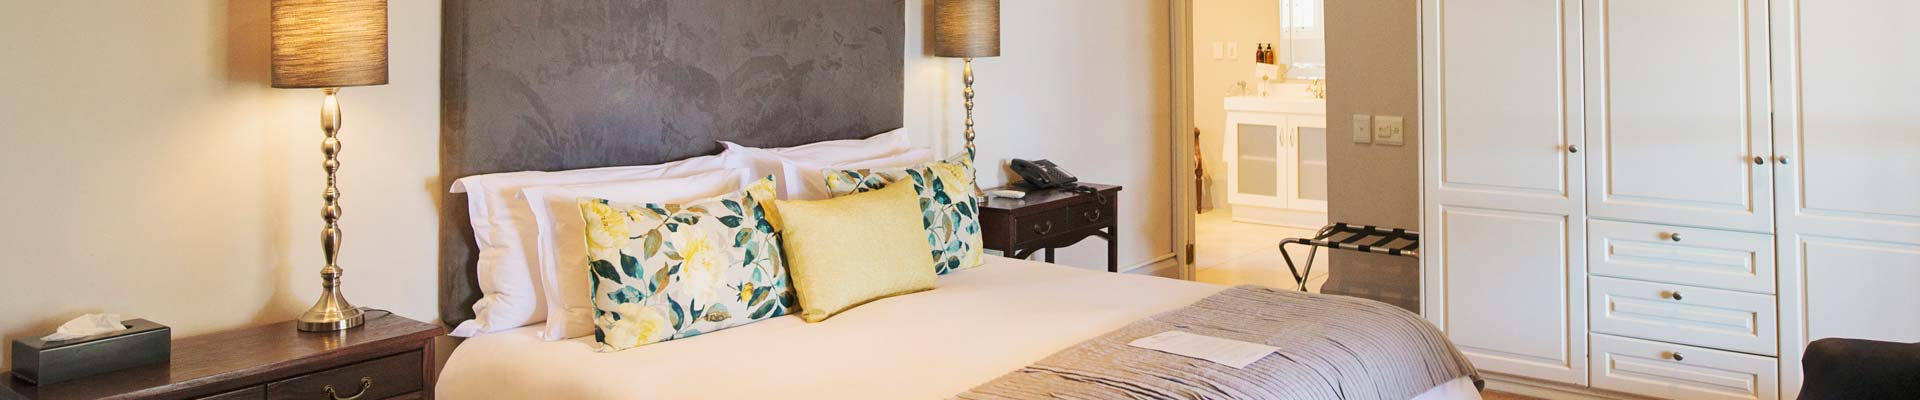 luxury-accommodation-franschhoek-3